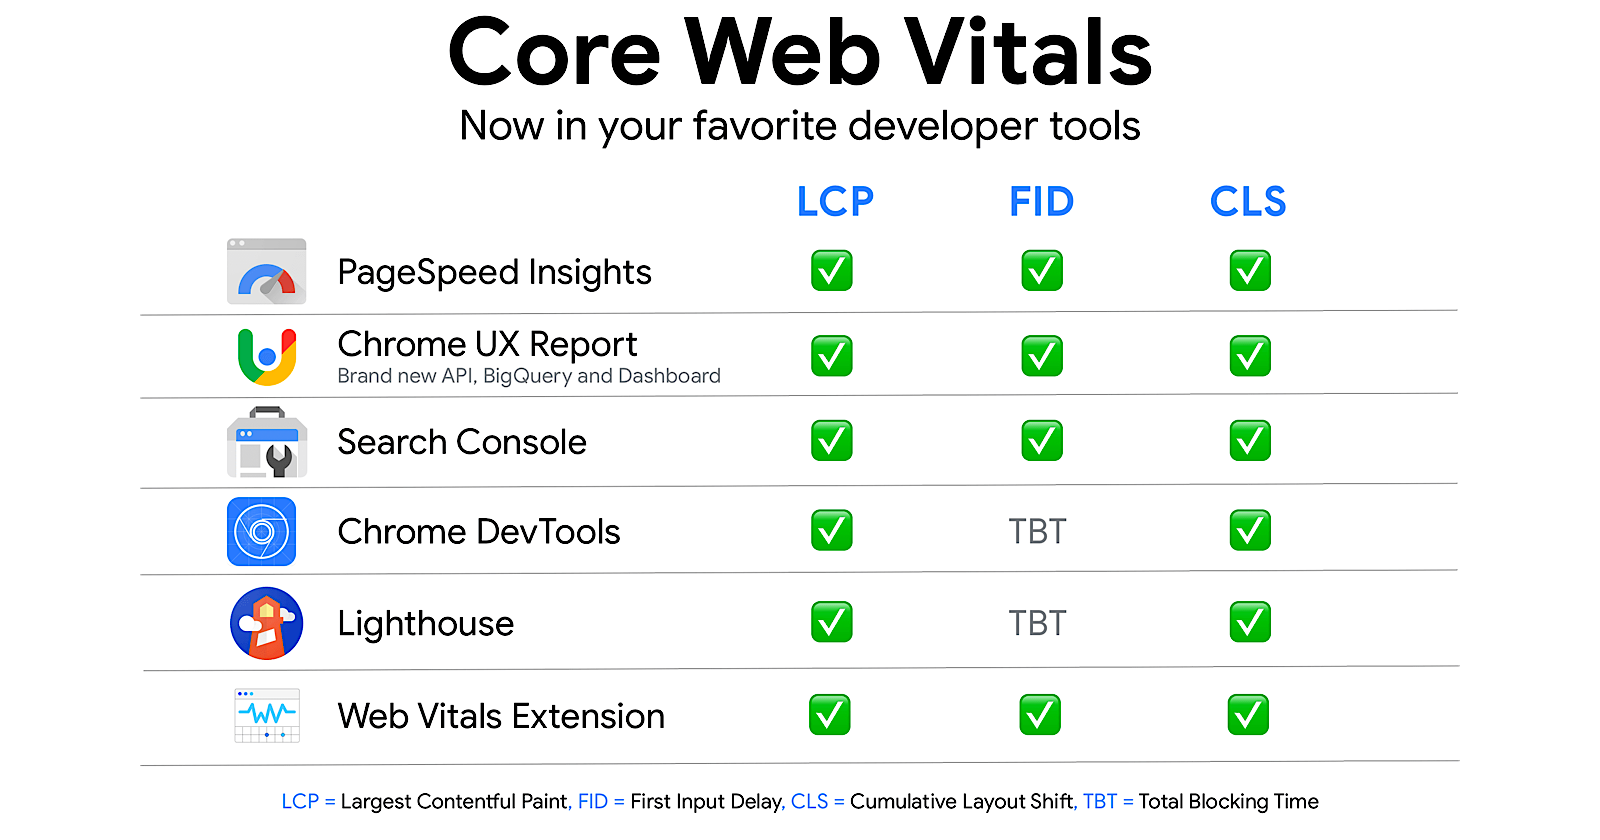 Google Now Has 6 Ways to Measure Core Web Vitals - Search Engine Journal